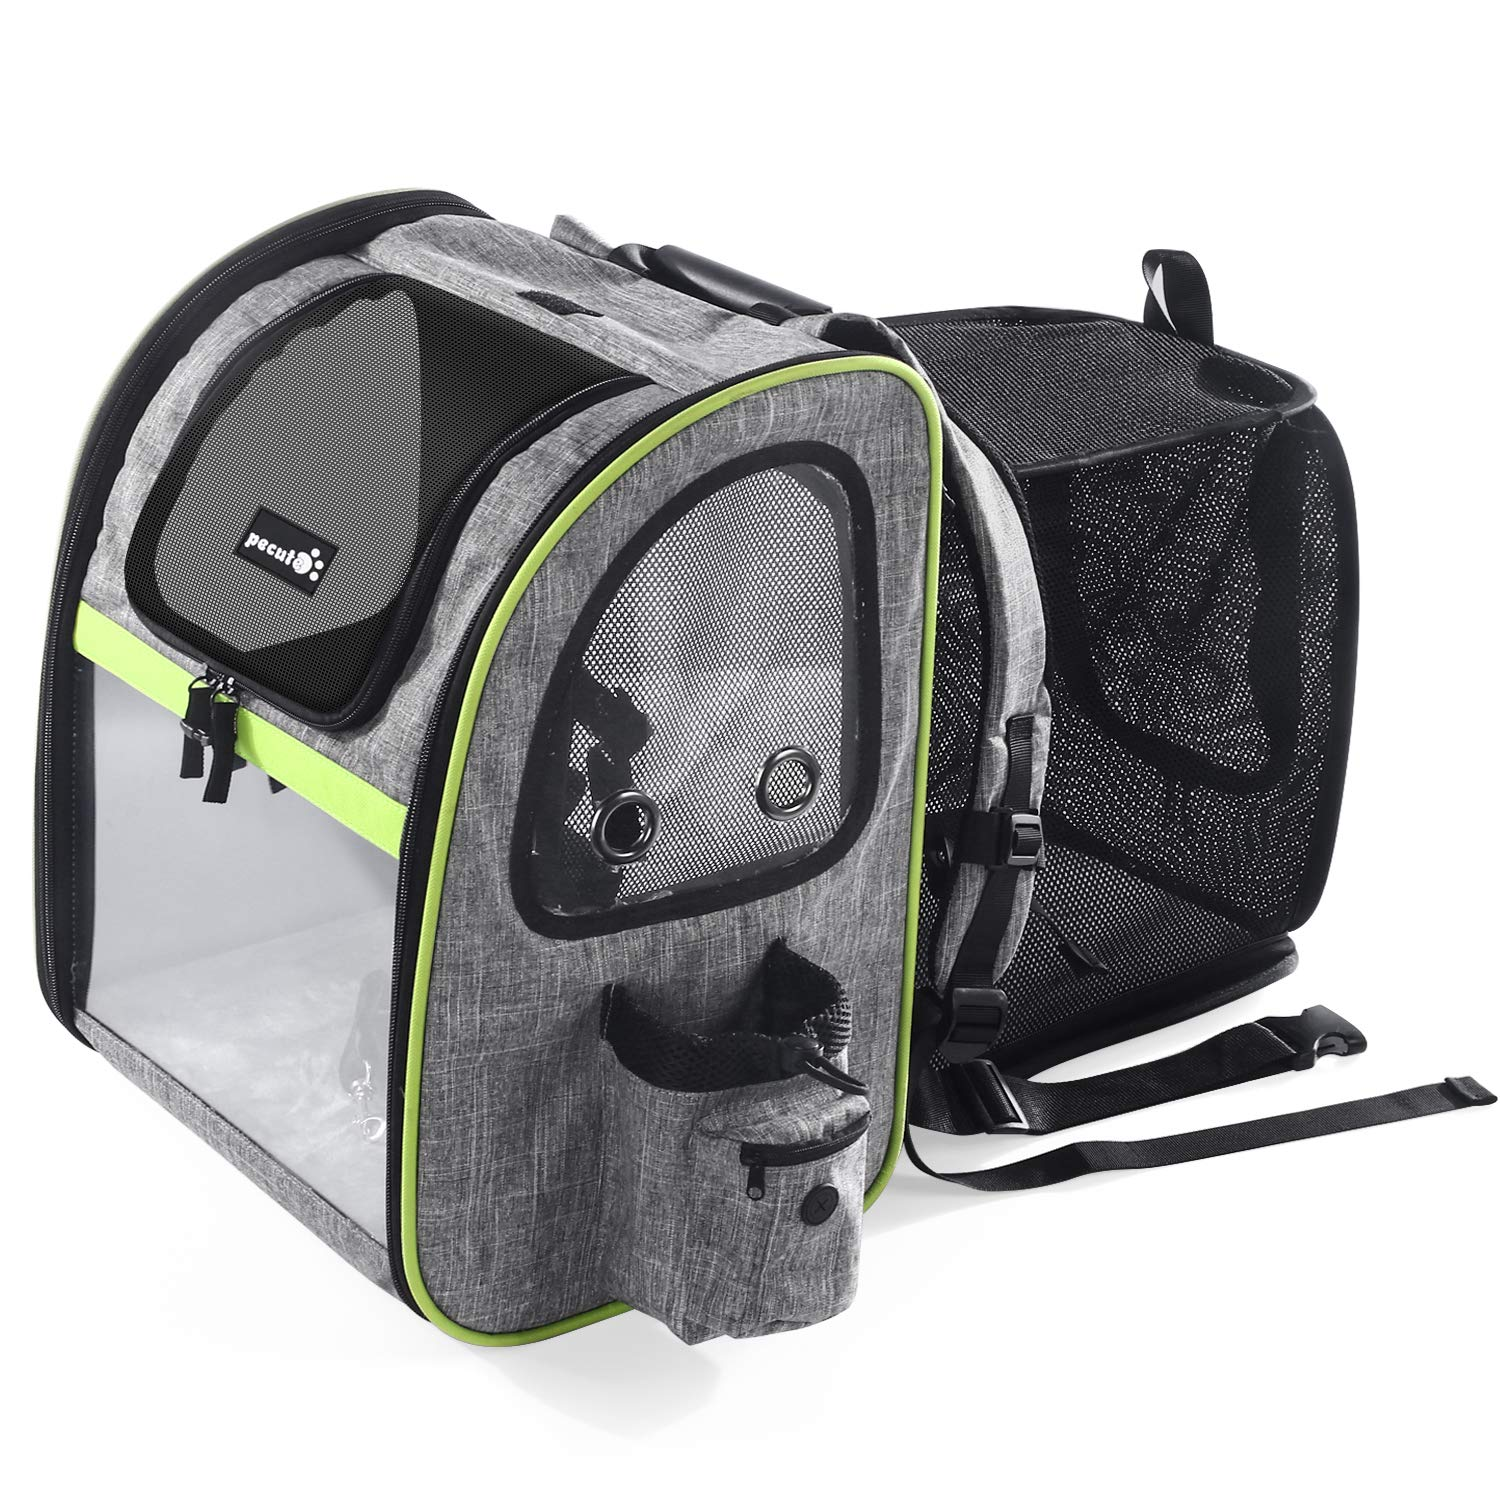 Pecute Dog Carrier Backpack Pet Backpack with Ventilated Breathable Mesh Portable Pet Expandable Bag for Puppy Dogs and Cats, Easy-Fit for Traveling Hiking Camping, Gray (Maximum Load 20 Lbs) by Pecute